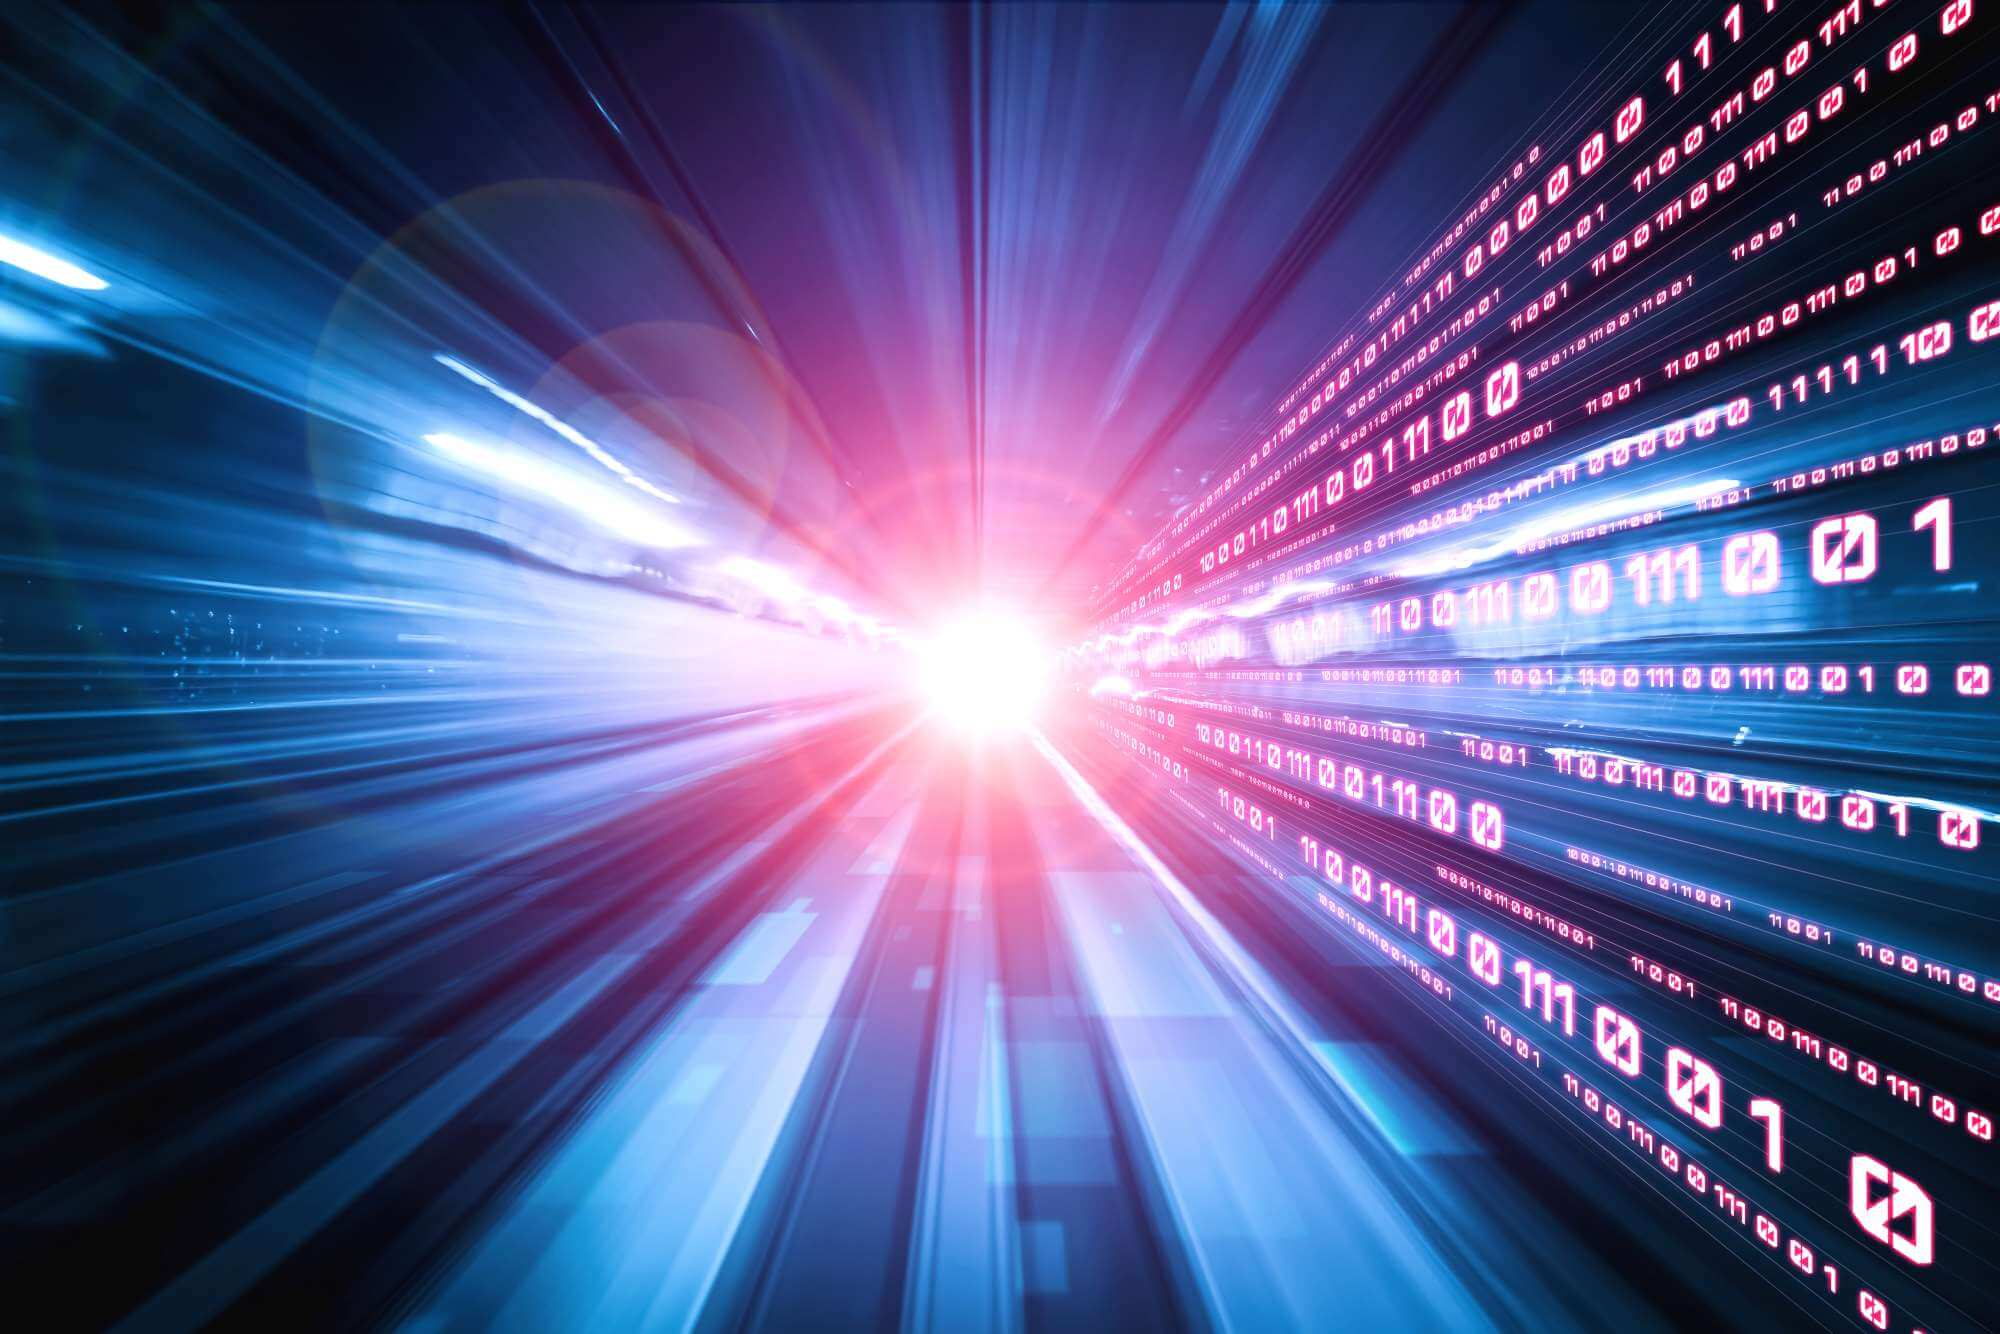 Digital enterprises need a well-planned network infrastructure - Part 3